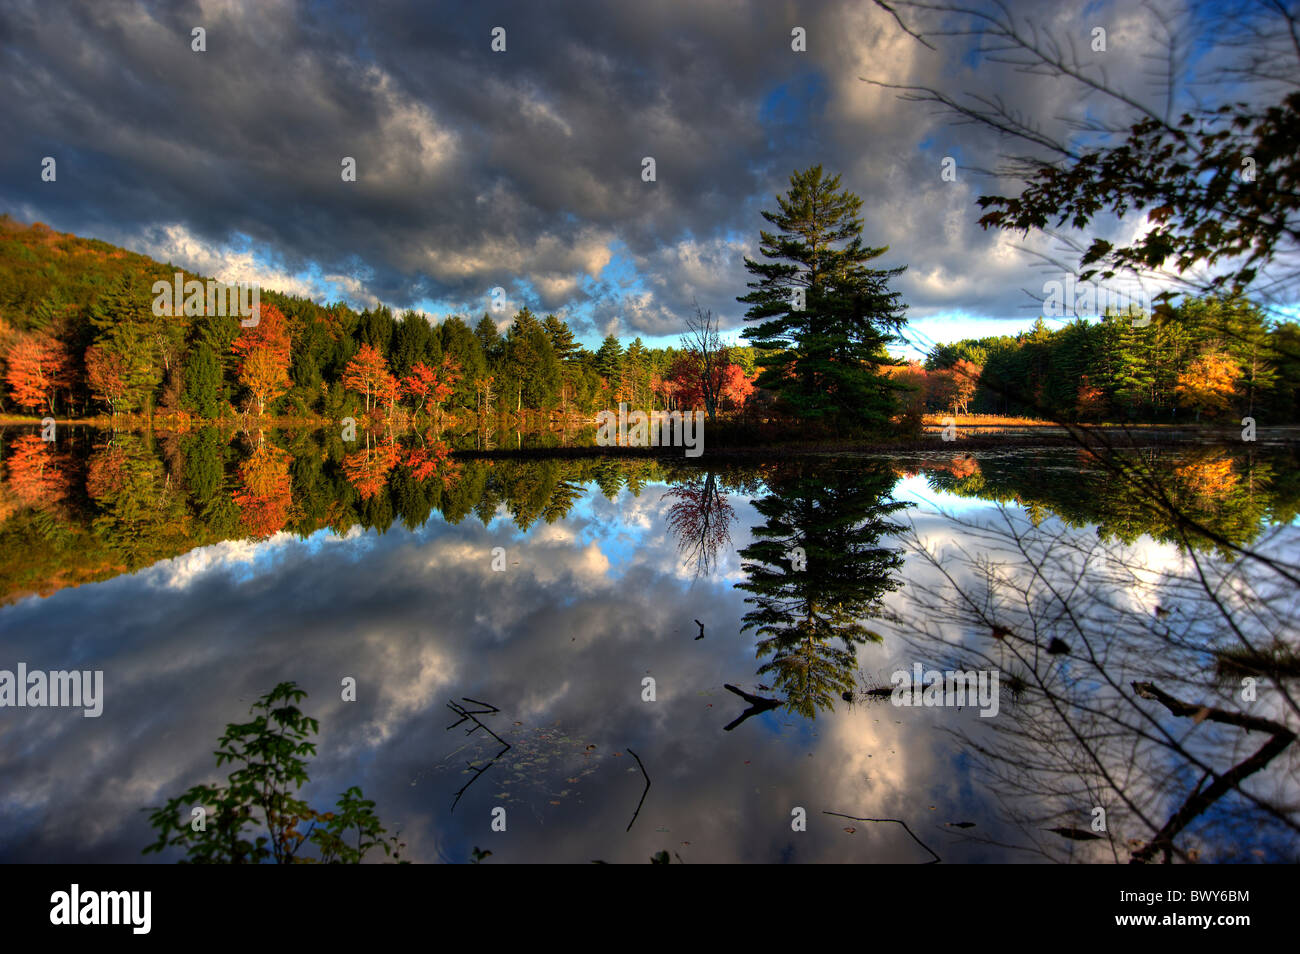 Fall Foliage - Stock Image